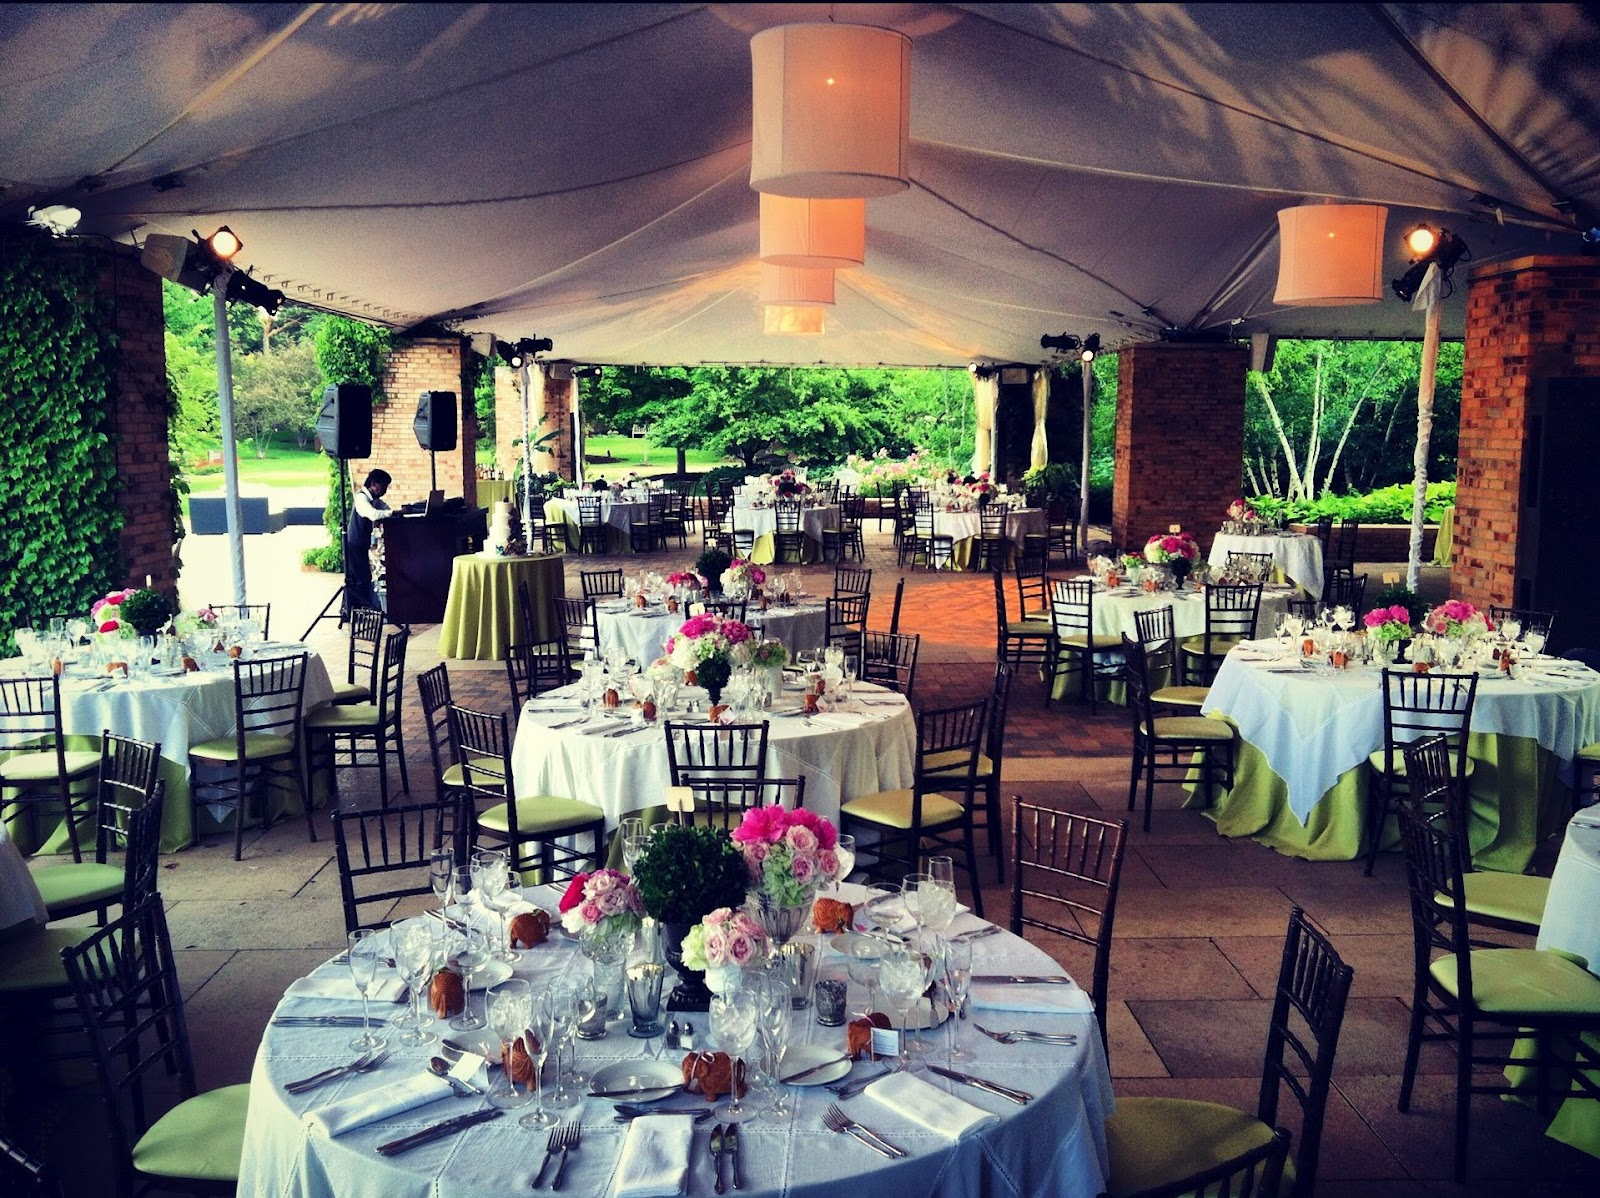 Unique wedding venues in lake county visit lake county blog for Chicago botanic garden wedding